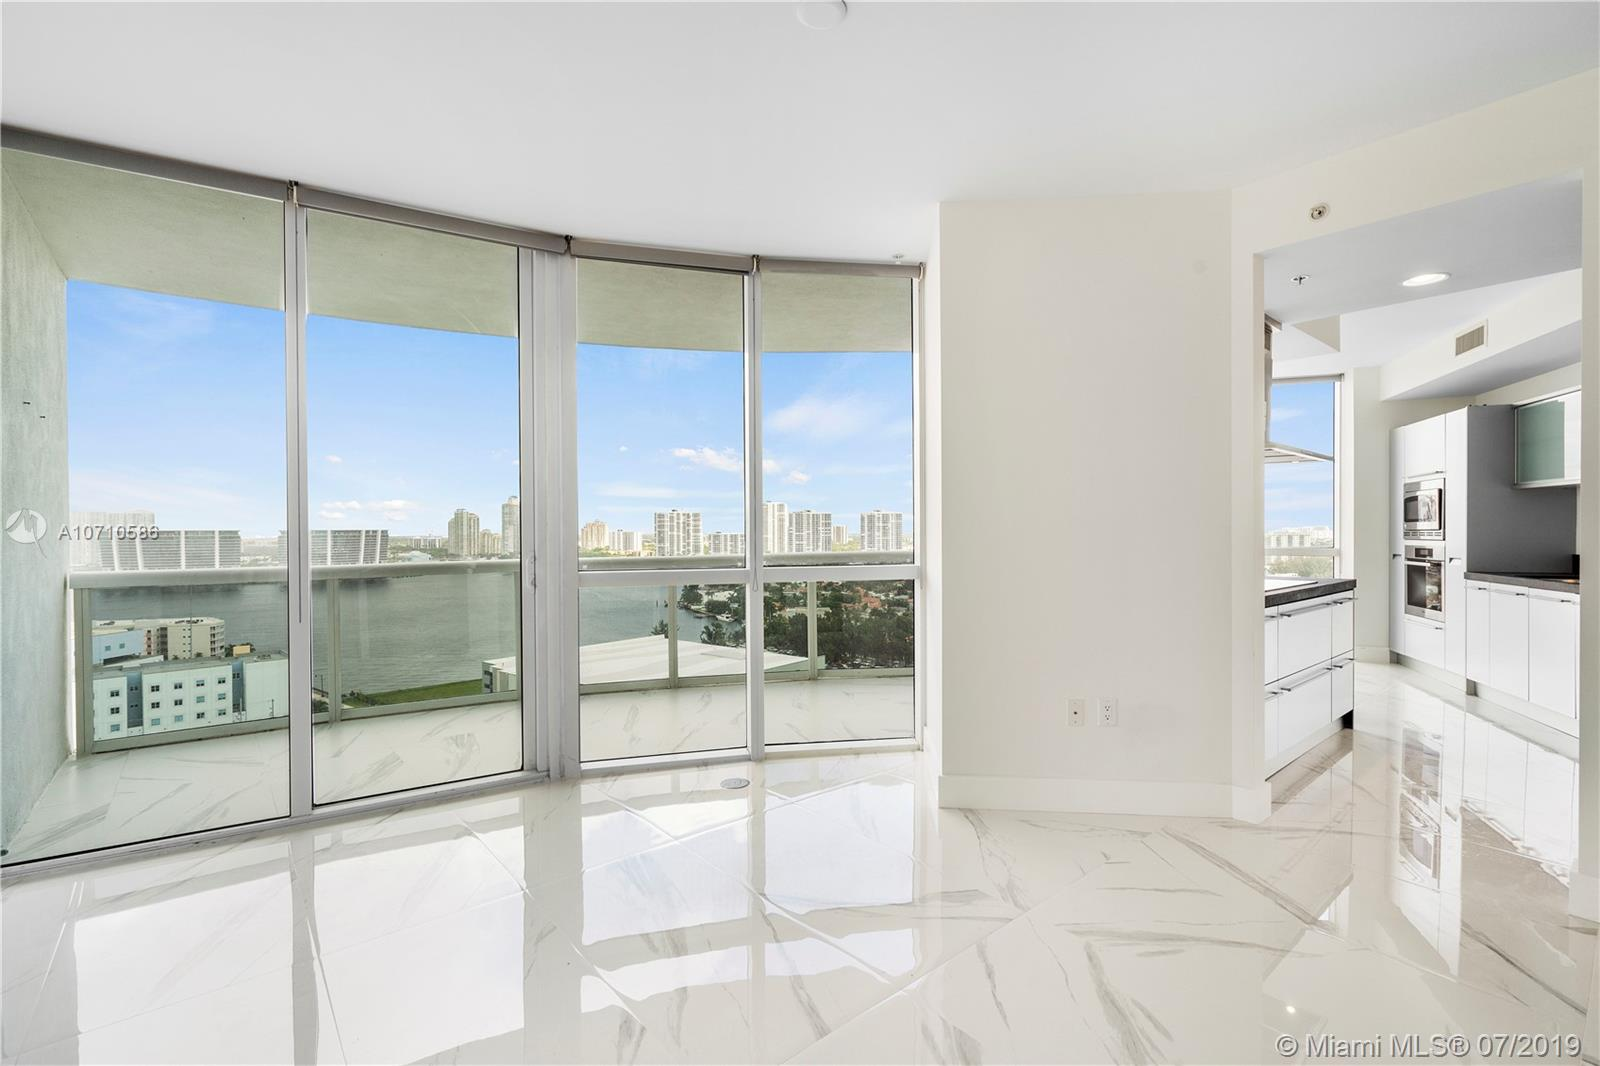 REDUCED! BEST PRICE PER FOOT !  BE THE FIRST TO OWN AND OCCUPY THIS BEAUTIFULLY RENOVATED 2 BEDROOM/2.5 BATH CORNER UNIT!! AMAZING VIEWS FROM EVERY ROOM, ENJOY  THE OCEAN VIEWS FROM THE BIG EAT IN KITCHEN, MASTER AND SECOND BEDROOM AS WELL AS UNOBSTRUCTED INTRACOASTAL AND CITY VIEWS. Large living room great for entertaining, plus dining area and large eat in kitchen, huge master bedroom and master closet. Just replaced beautiful large slabs of carrara porcelain and modern baseboards throughout..even the bathrooms! Freshly painted. Brand new and Ready for your client to move in! Easy to show!